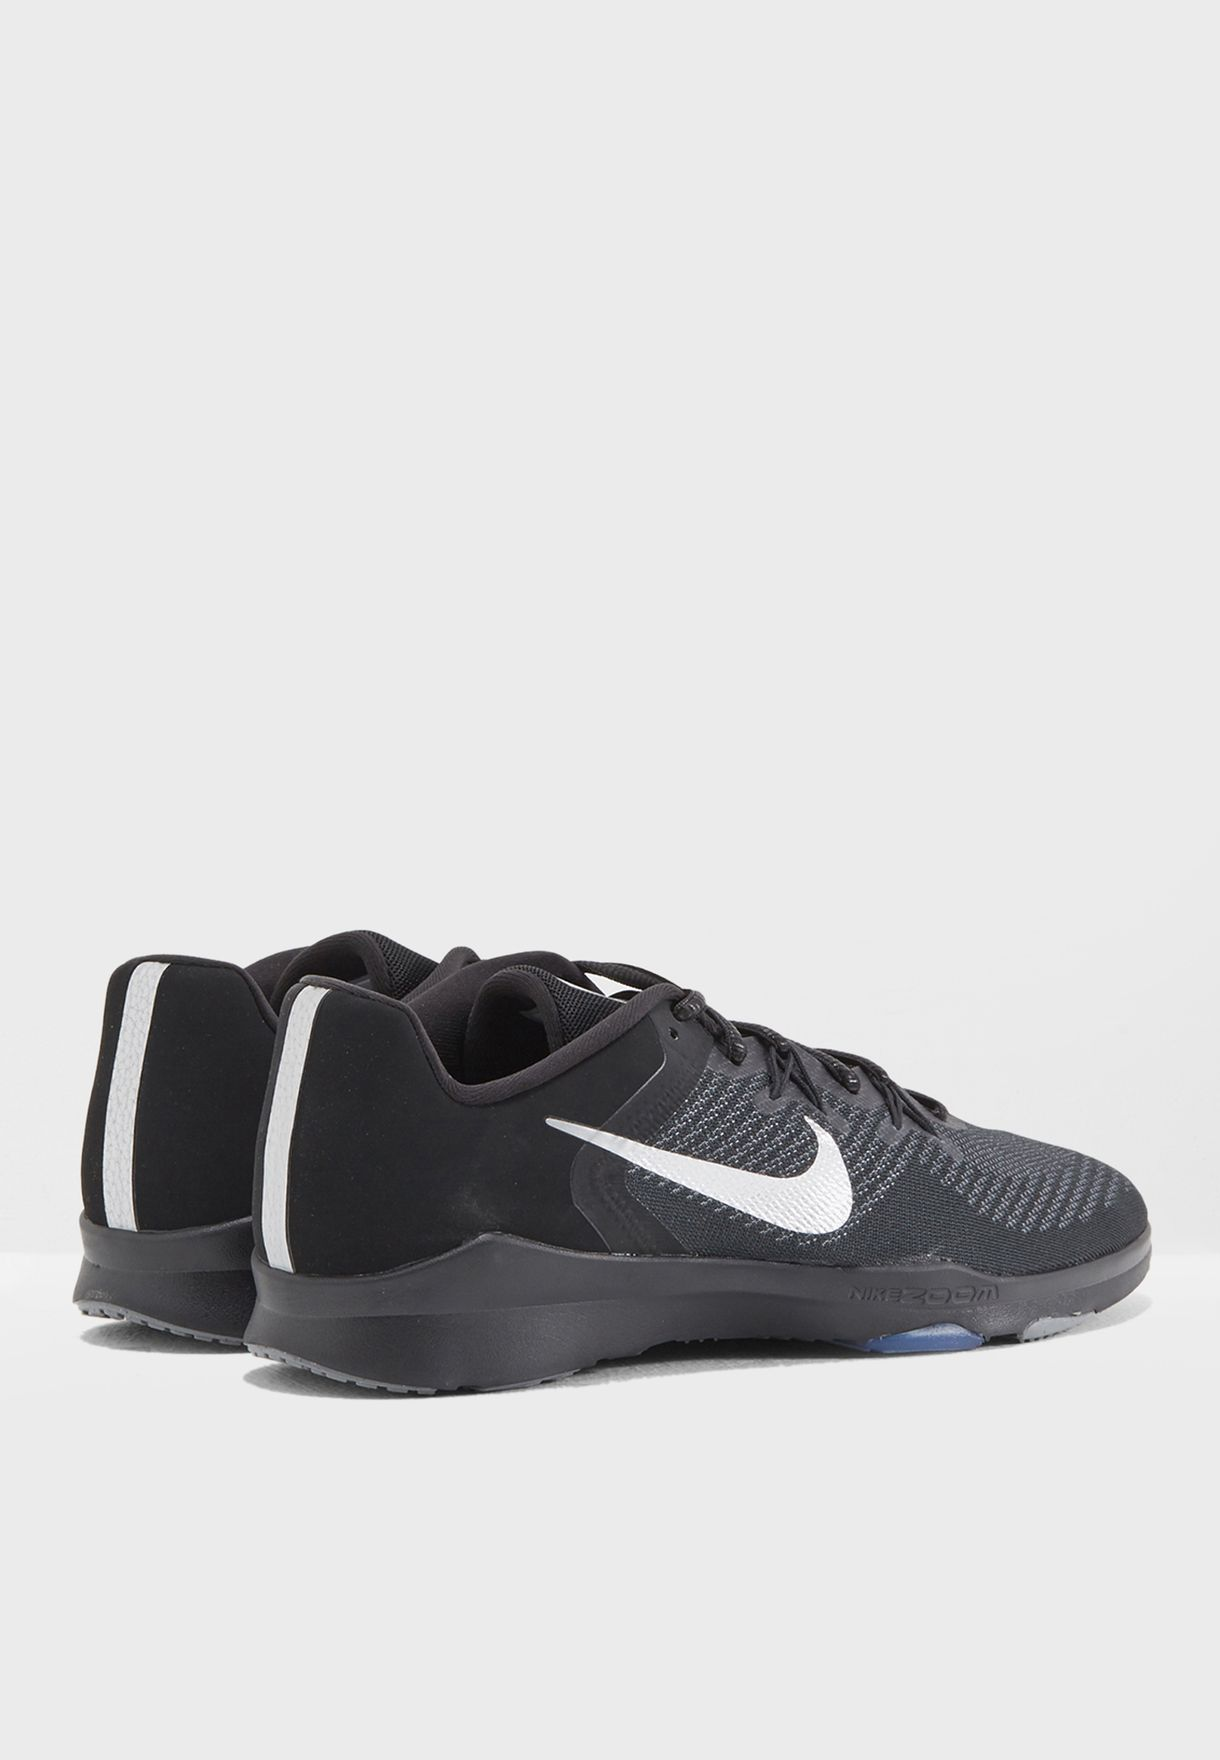 7a0bd187dc11 Shop Nike black Zoom Condition TR 2 PRM 909010-001 for Women in UAE ...